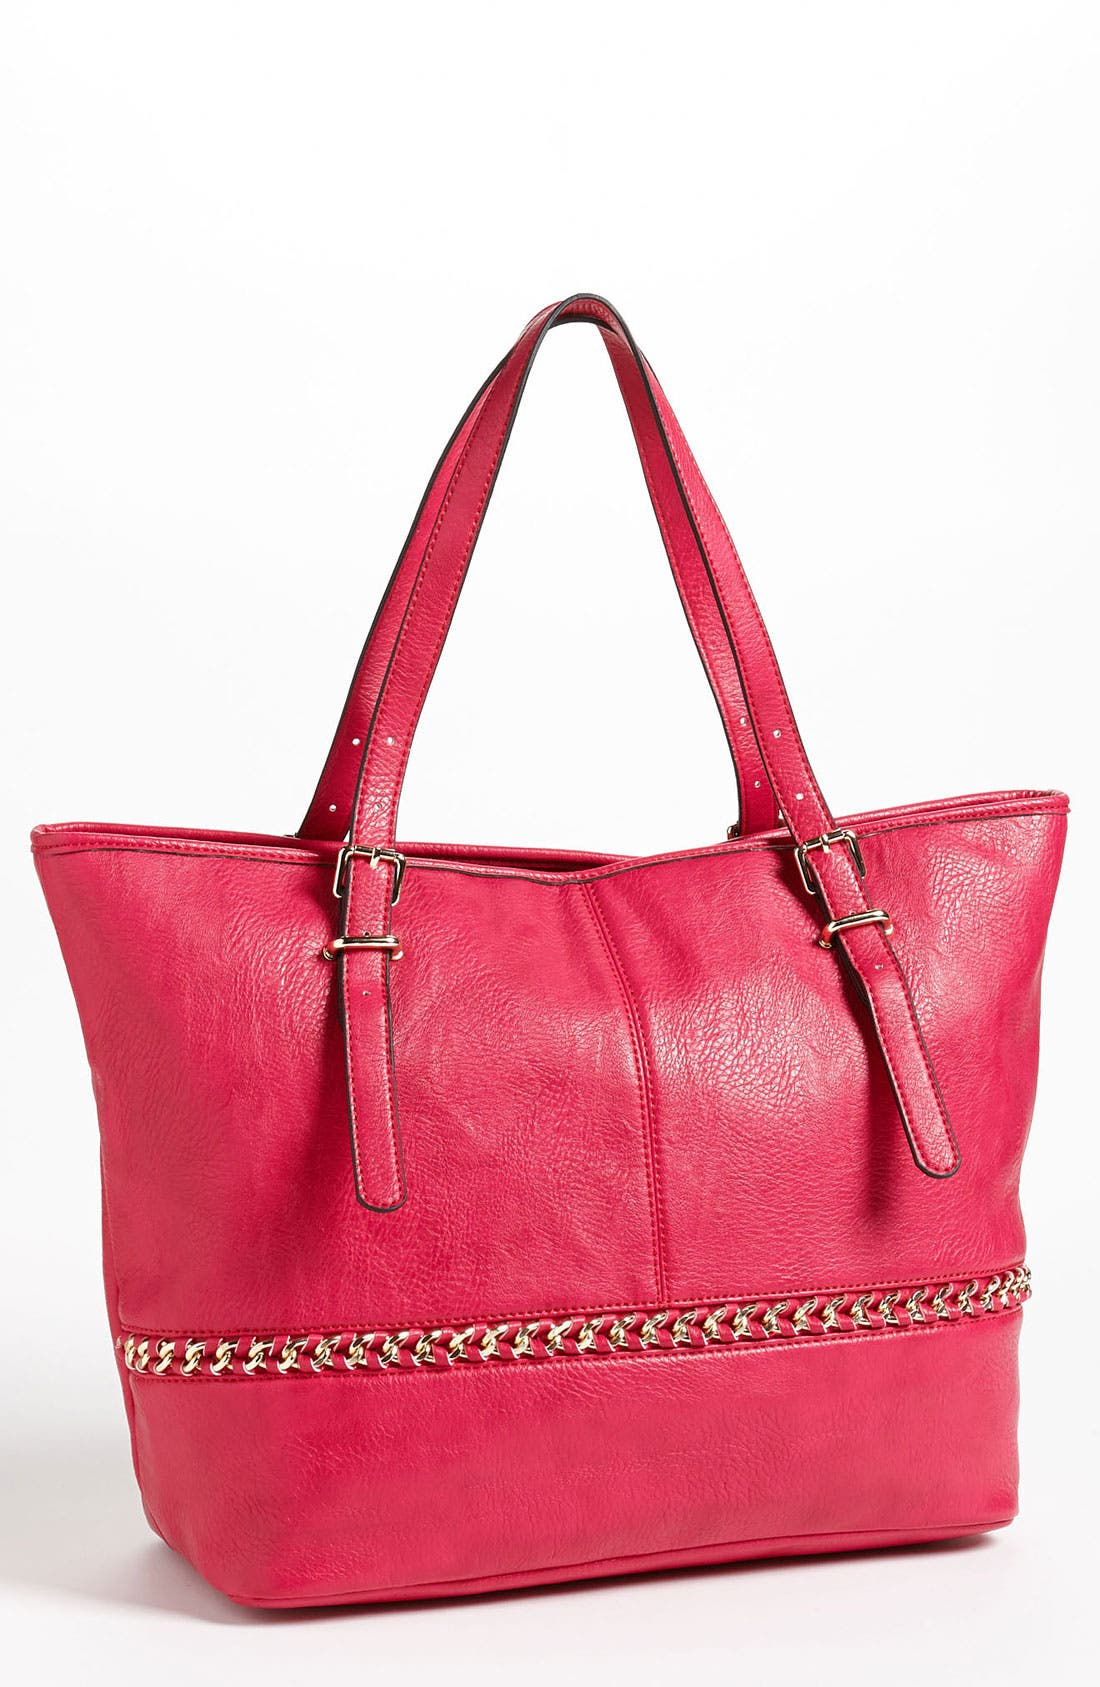 Alternate Image 1 Selected - Cesca 'Super Star' Chain Trim Tote (Online Exclusive)